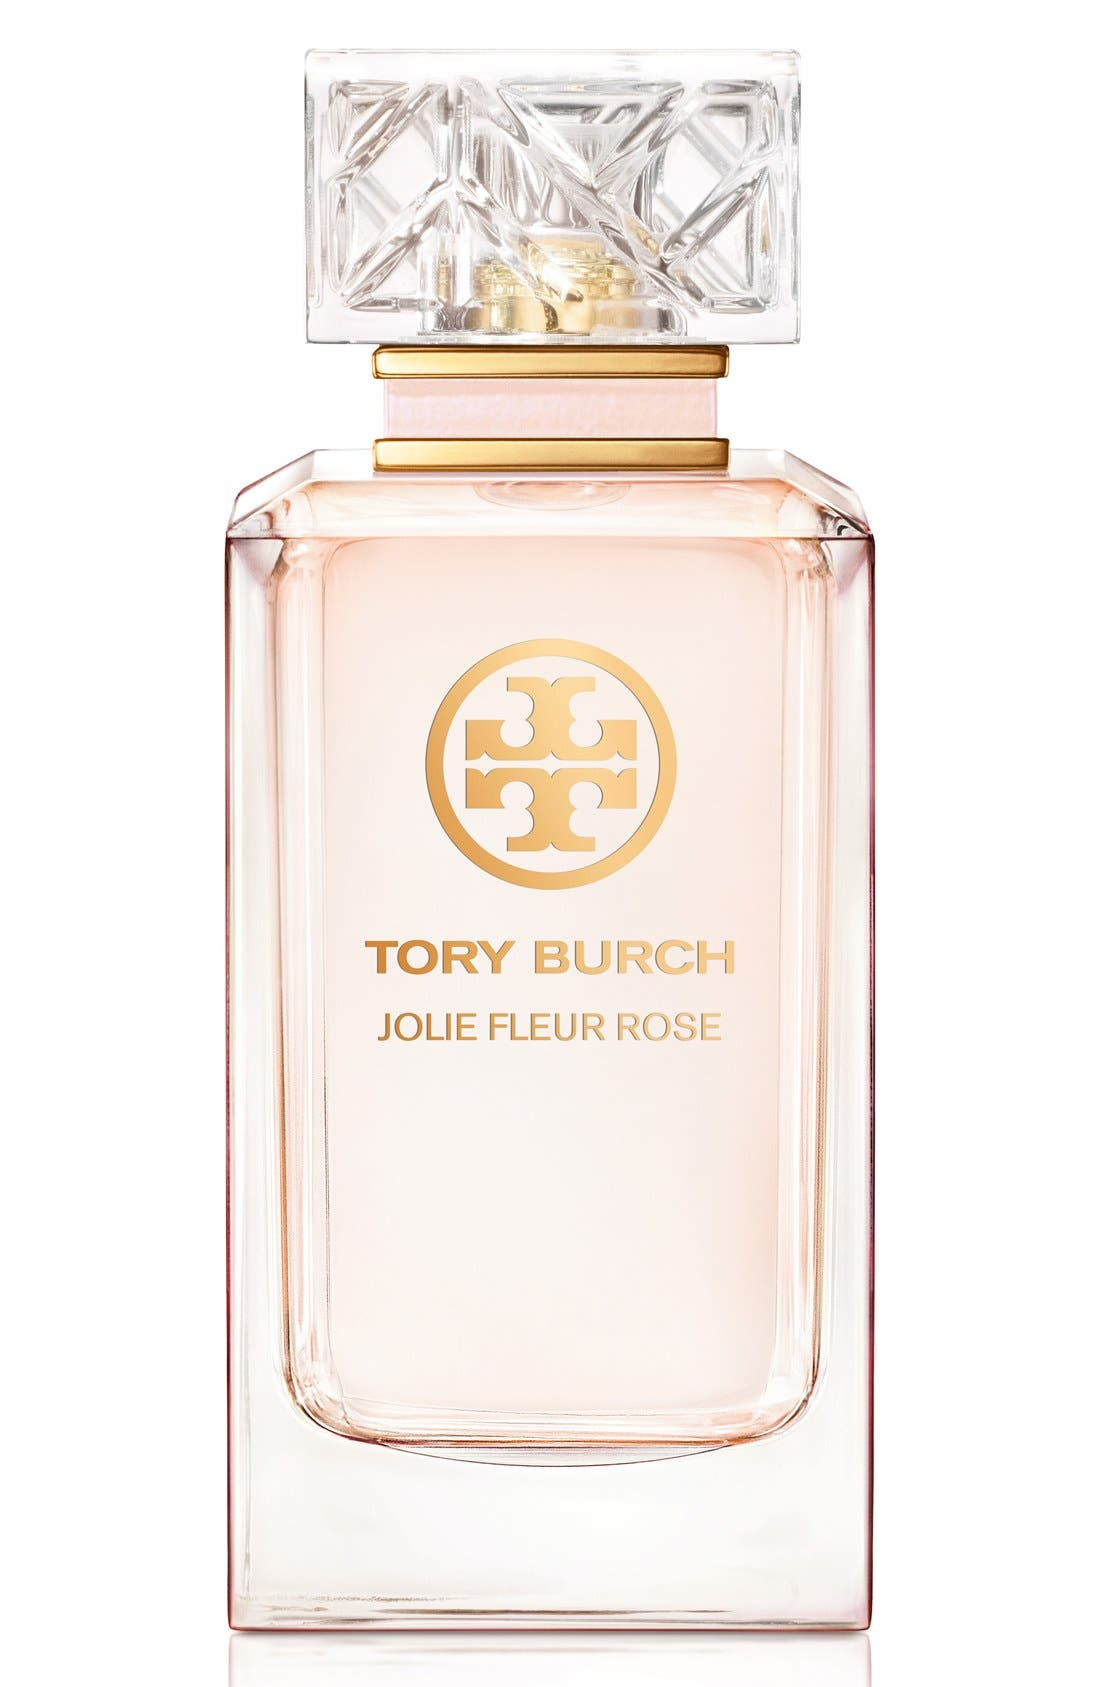 Tory Burch Jolie Fleur - Rose Eau de Parfum Spray